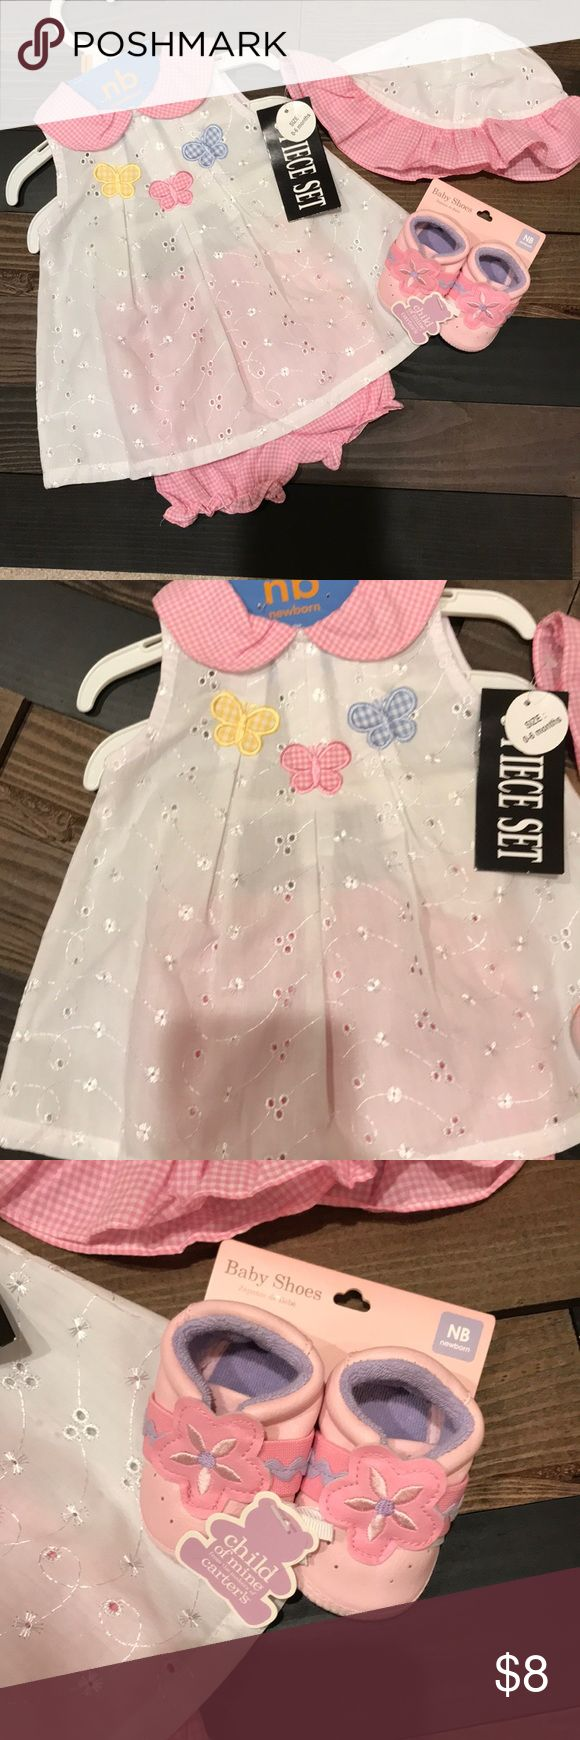 NWT.. White butterfly top w/pink plaid hat &shorts NWT.... white butterfly top with matching pink plaid shorts & hat and pink size NB shoes Carter's Matching Sets